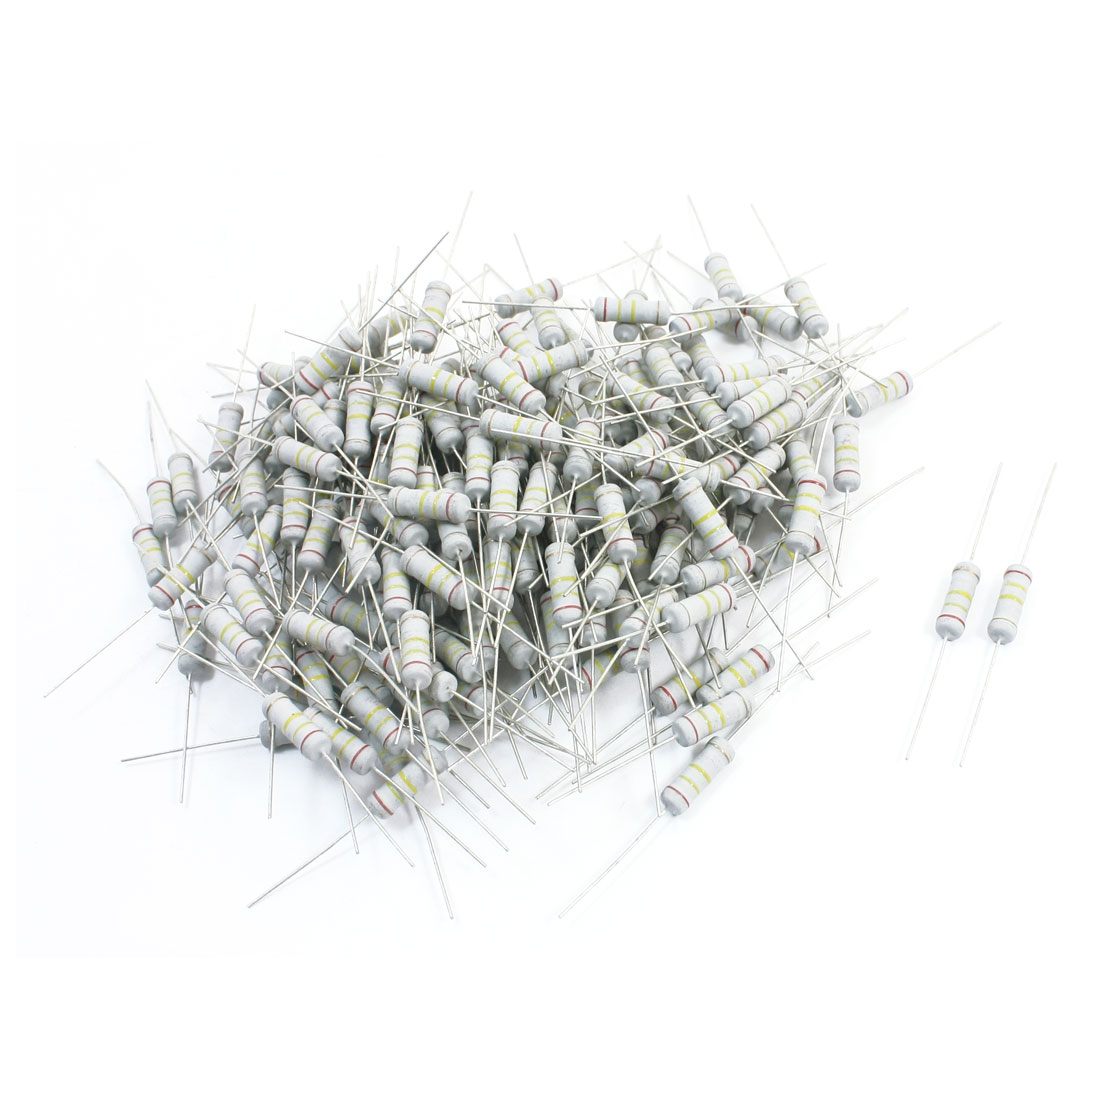 240K Ohm 3W 5% Tolerance Through Hole Metal Oxide Film Resistor 200Pcs